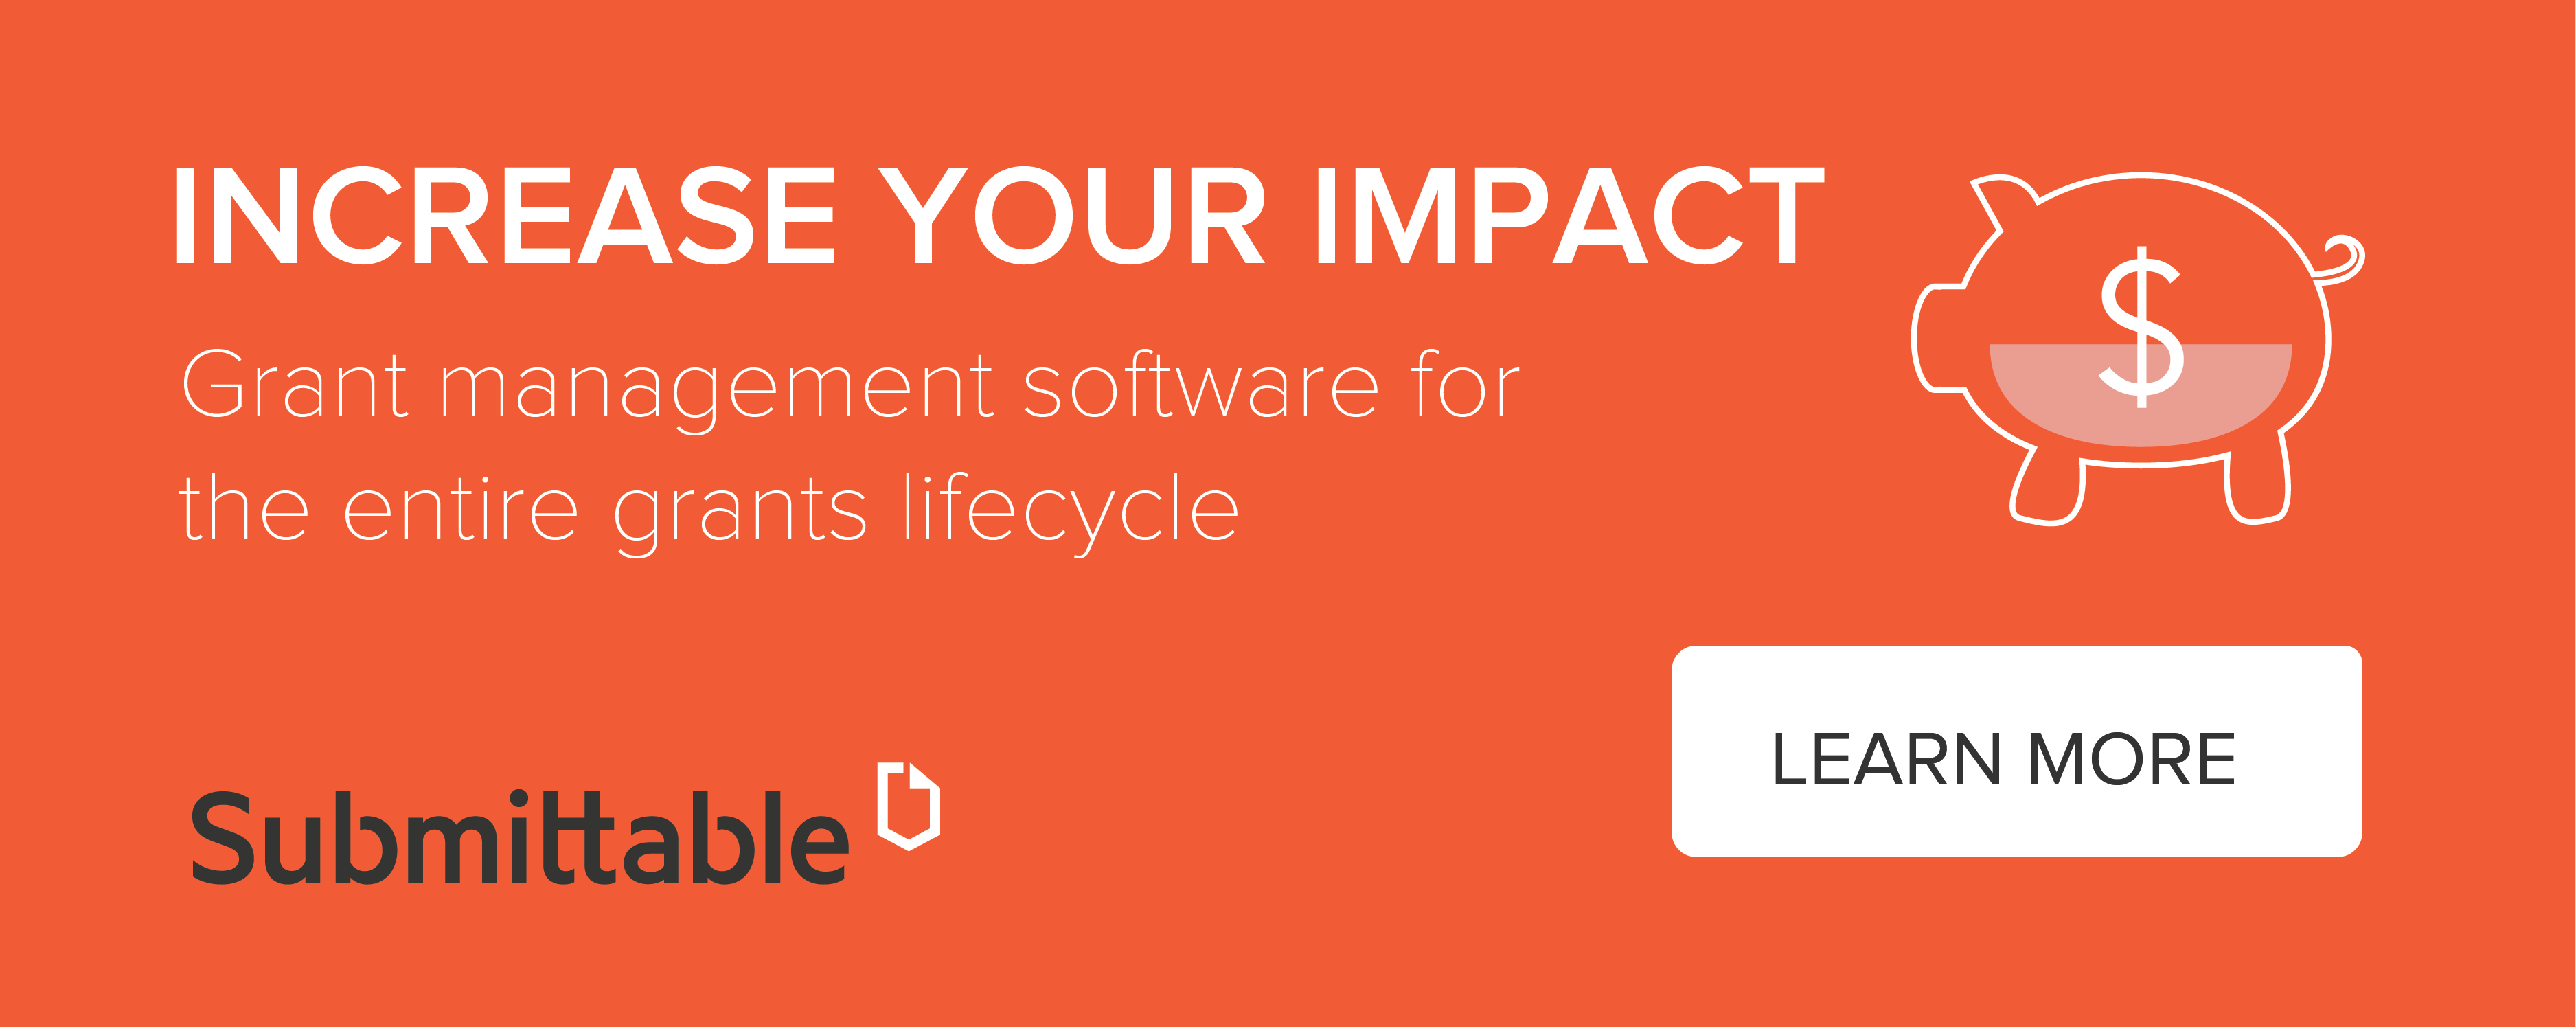 Increase Your Impact with Grant Management Software